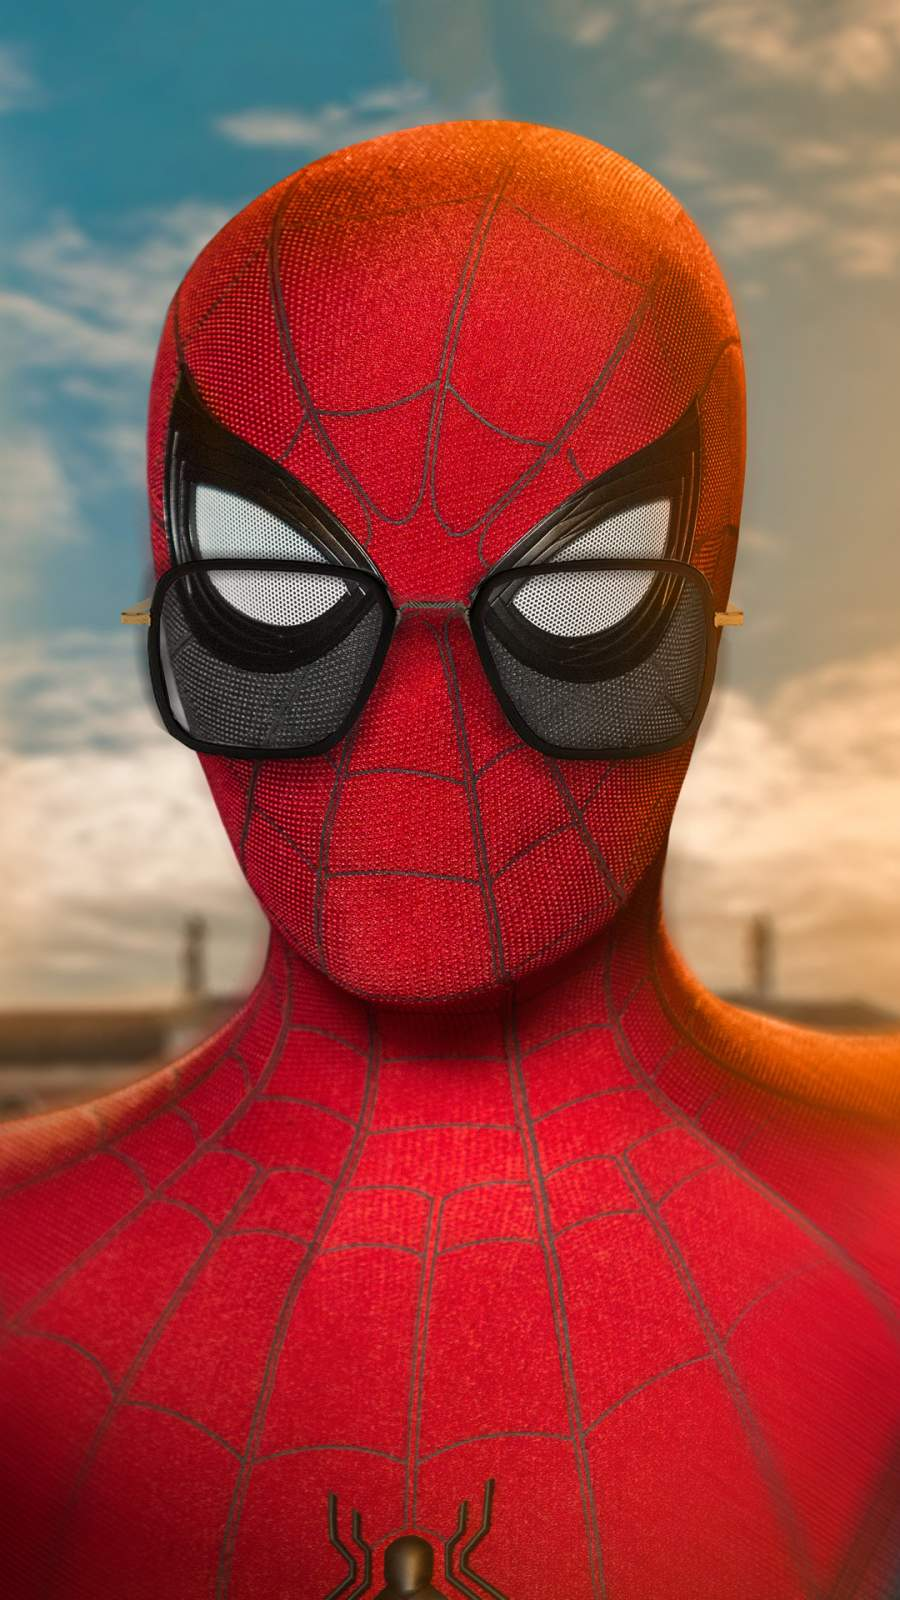 spiderman cool wallpaper for your mobile